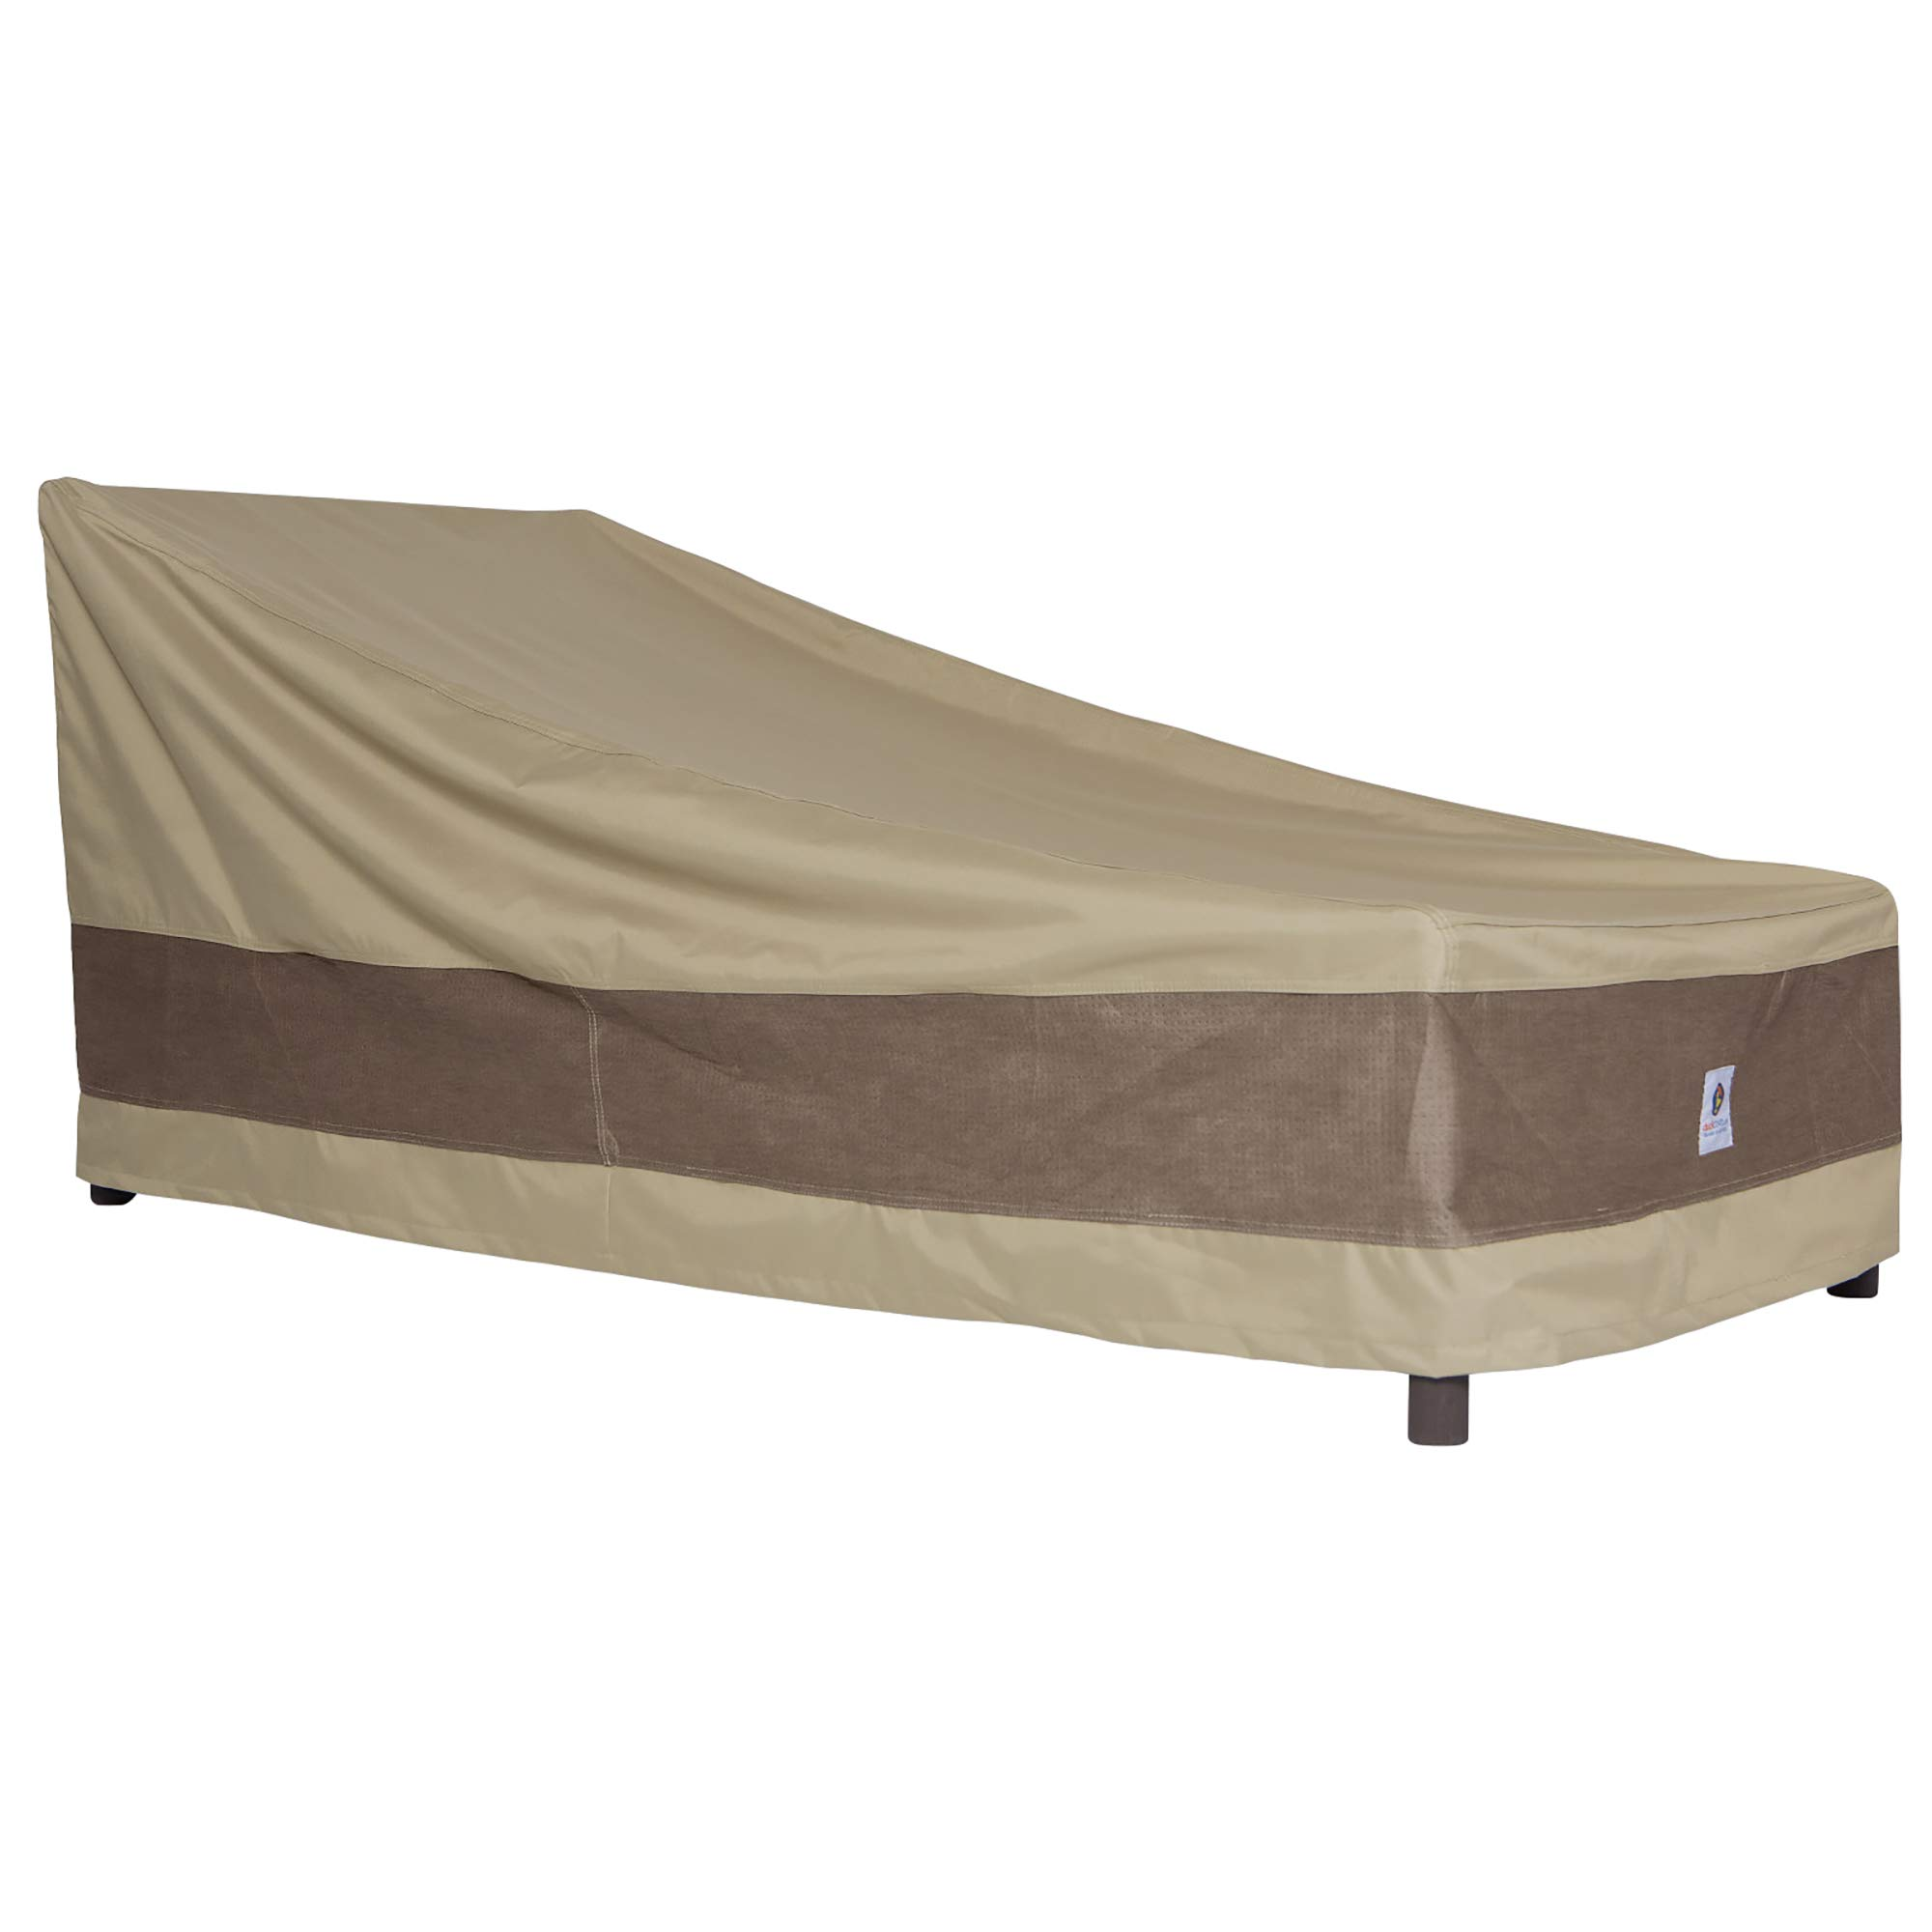 Duck Covers Elegant Patio Chaise Lounge Cover, Fits Outdoor Patio Chaise Lounge Chairs 80'' Long